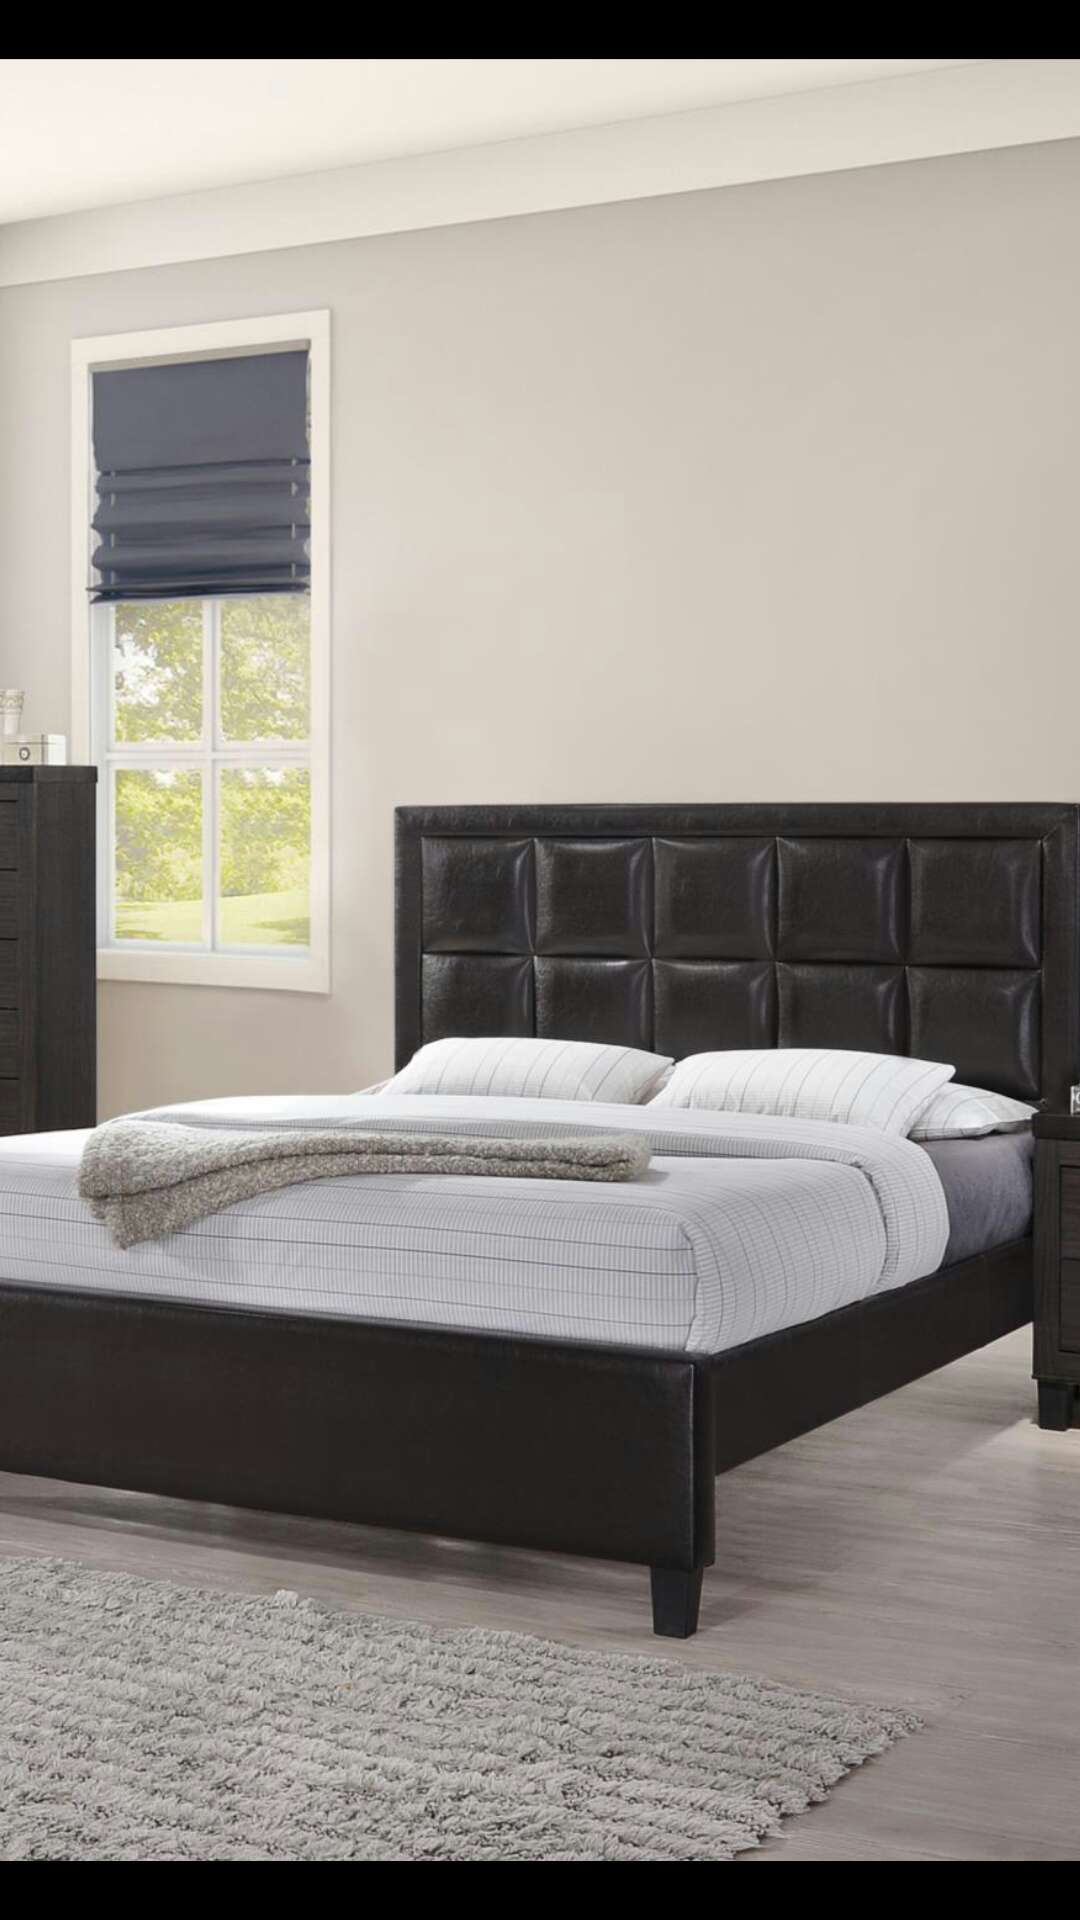 Brand New Queen Size Leather Platform Bed Mattress For Sale In Silver Spring Md 5miles Buy